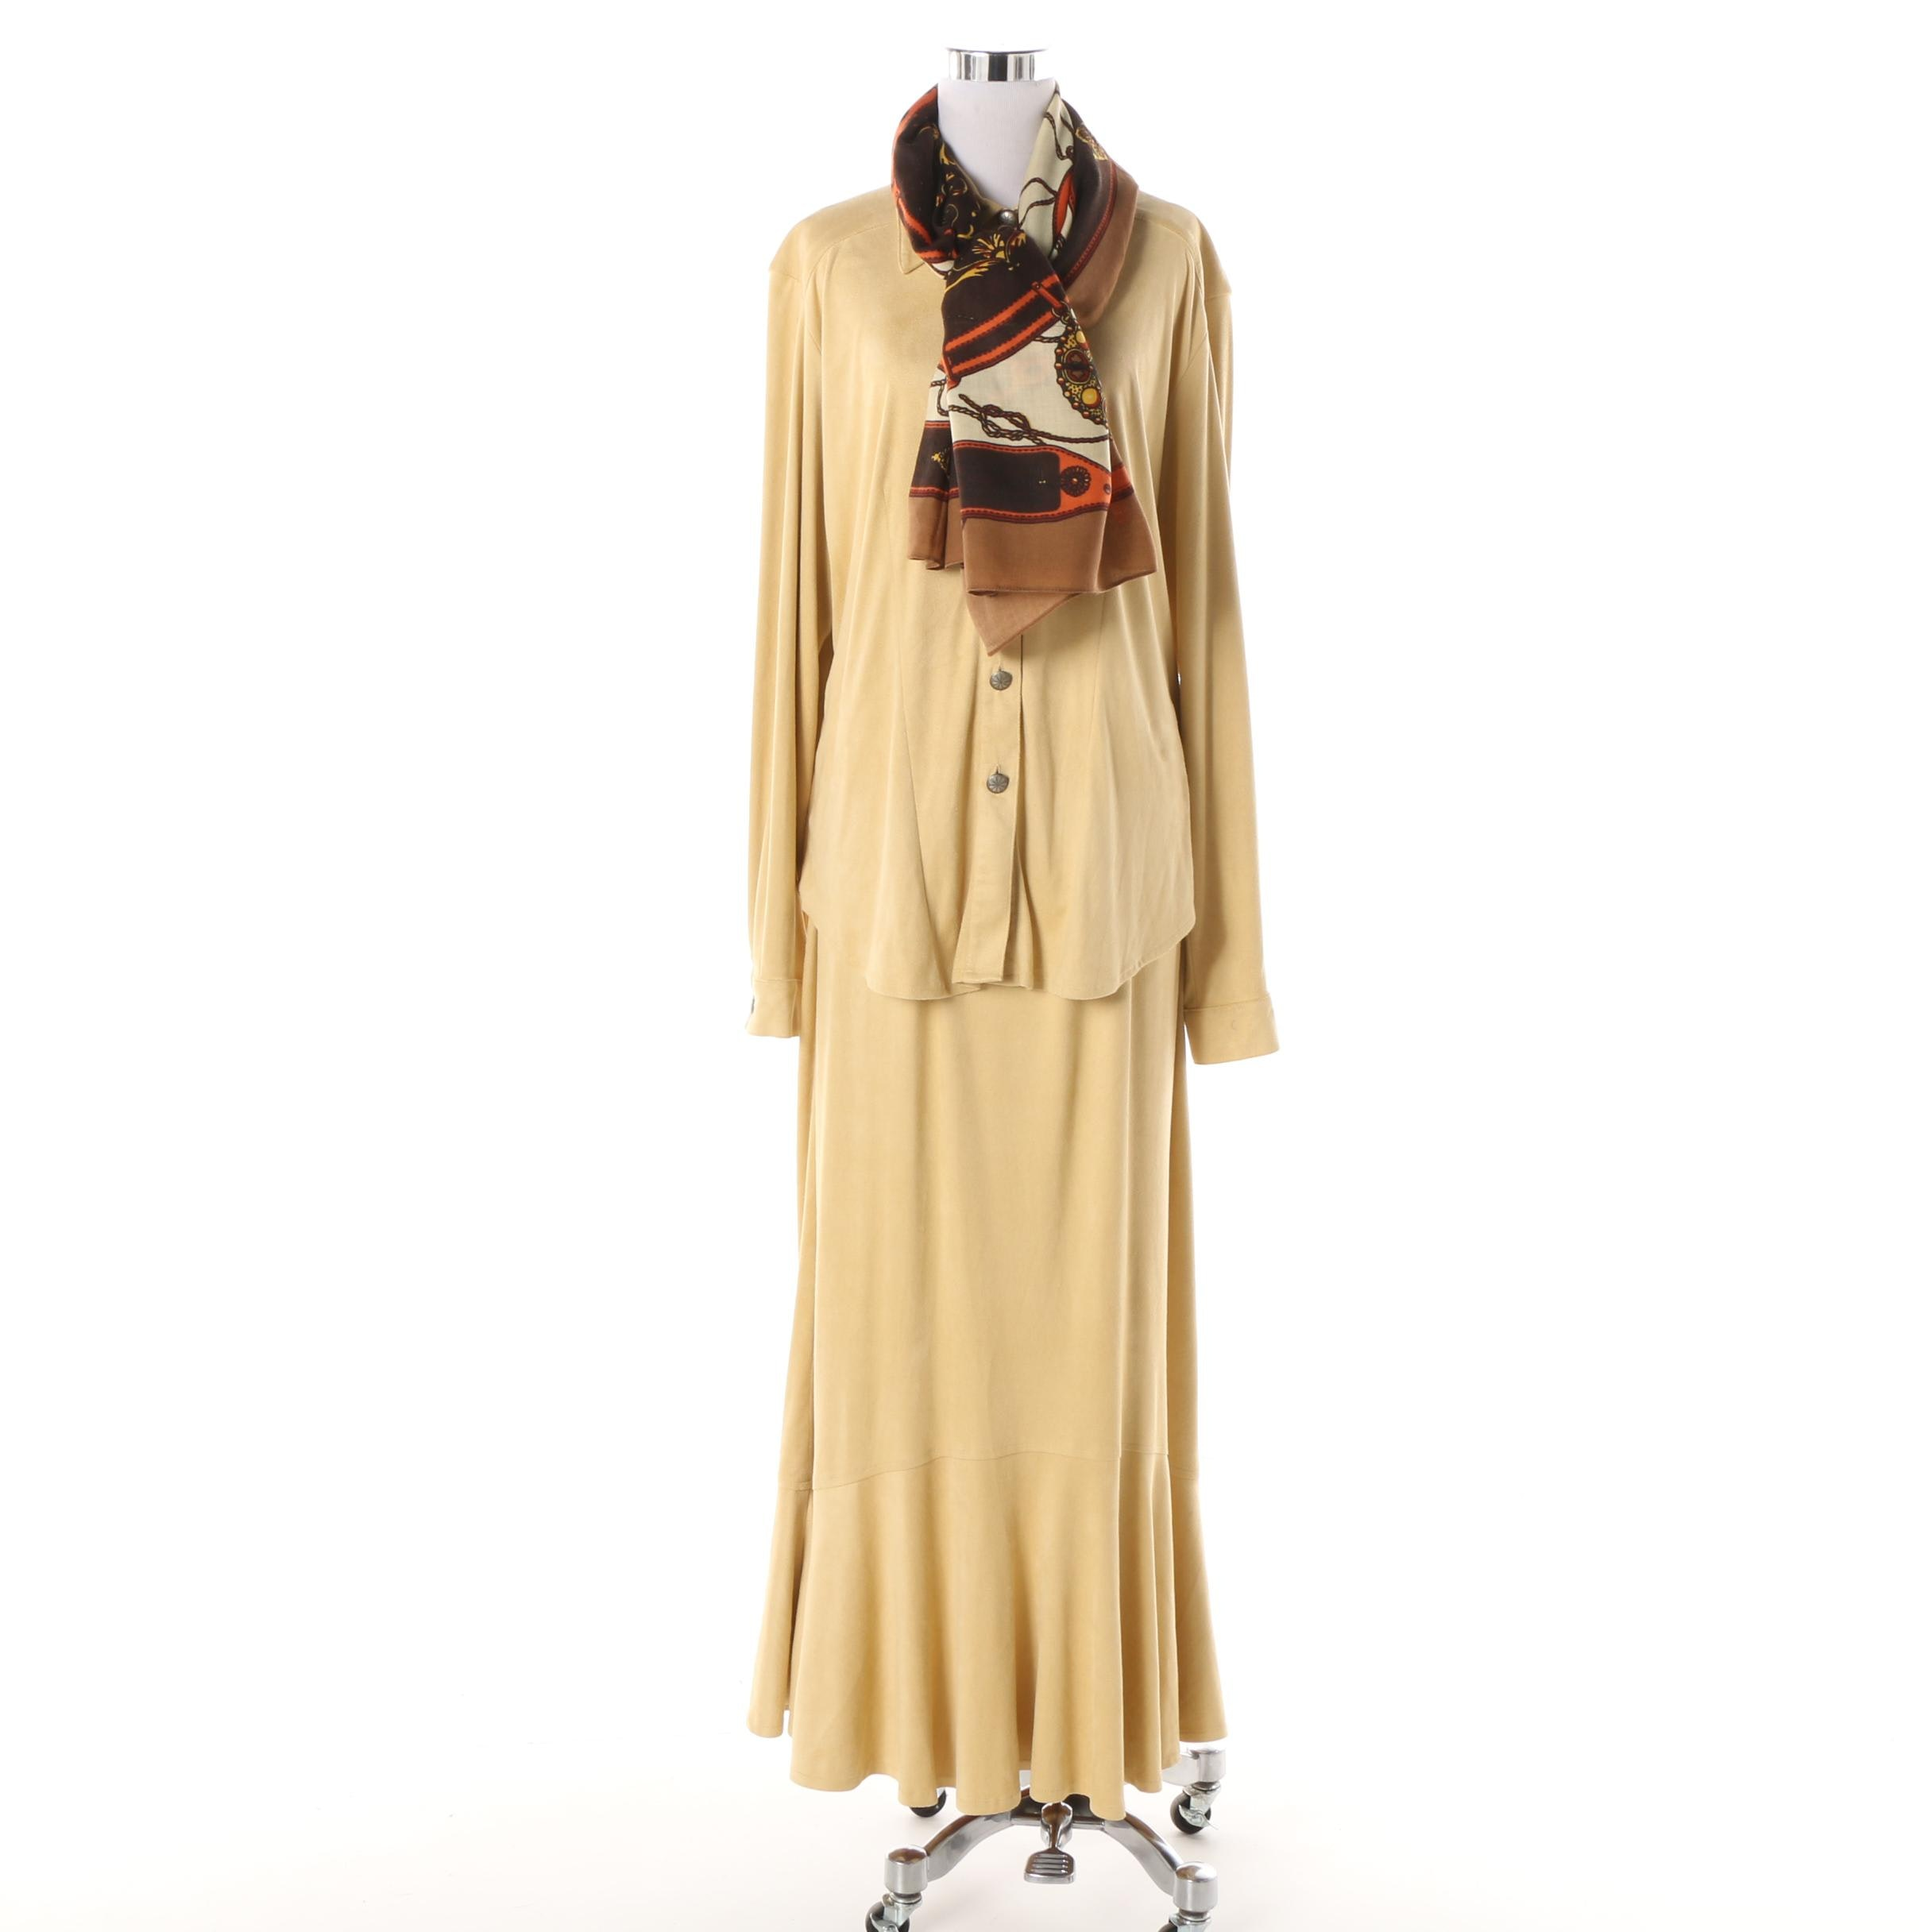 Double D Ranch of Texas Faux Suede Skirt Suit with Tasha Polizzi Scarf